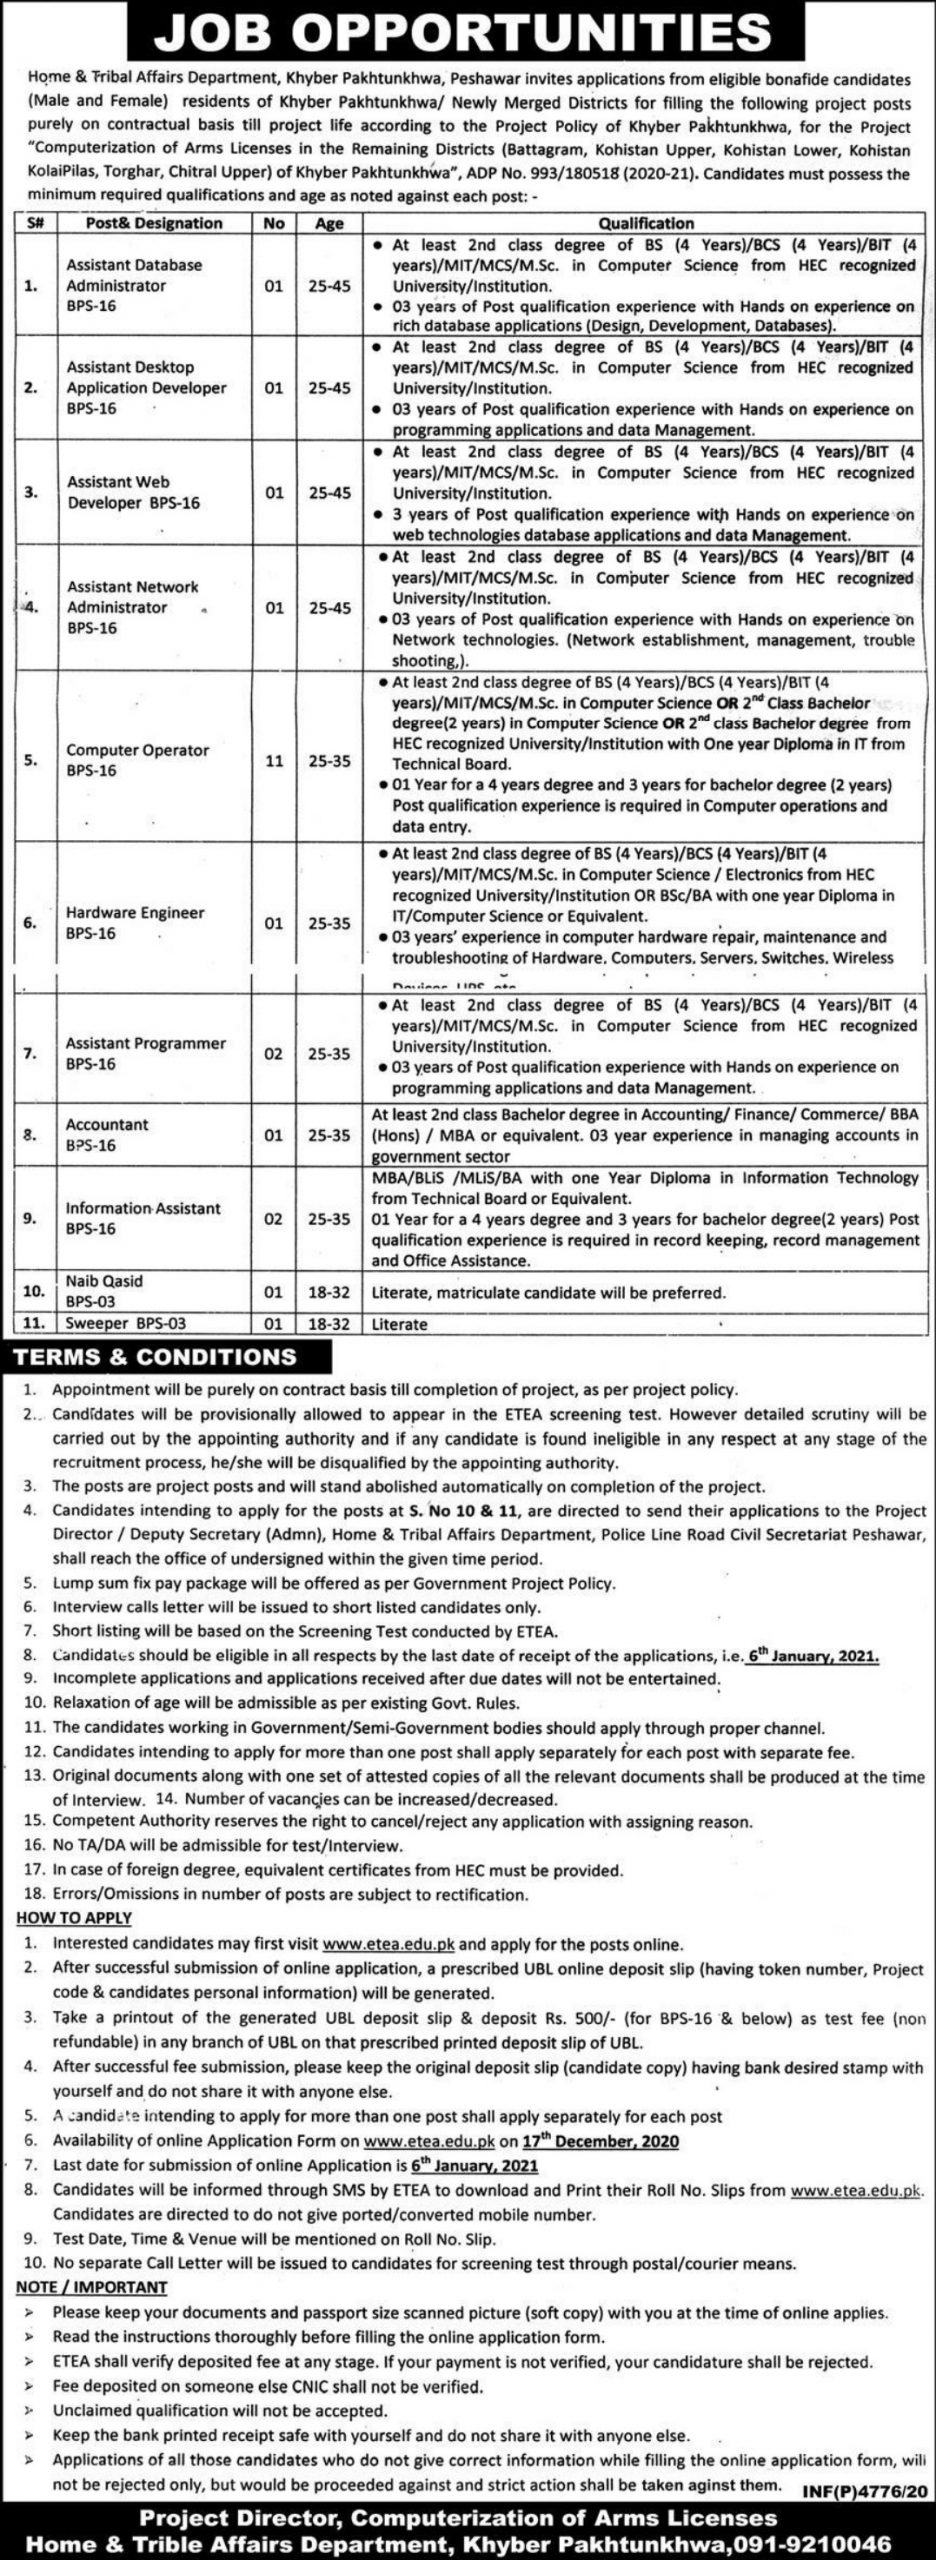 Home & Tribal Affairs Department Peshawar KPK ETEA Jobs December 2020